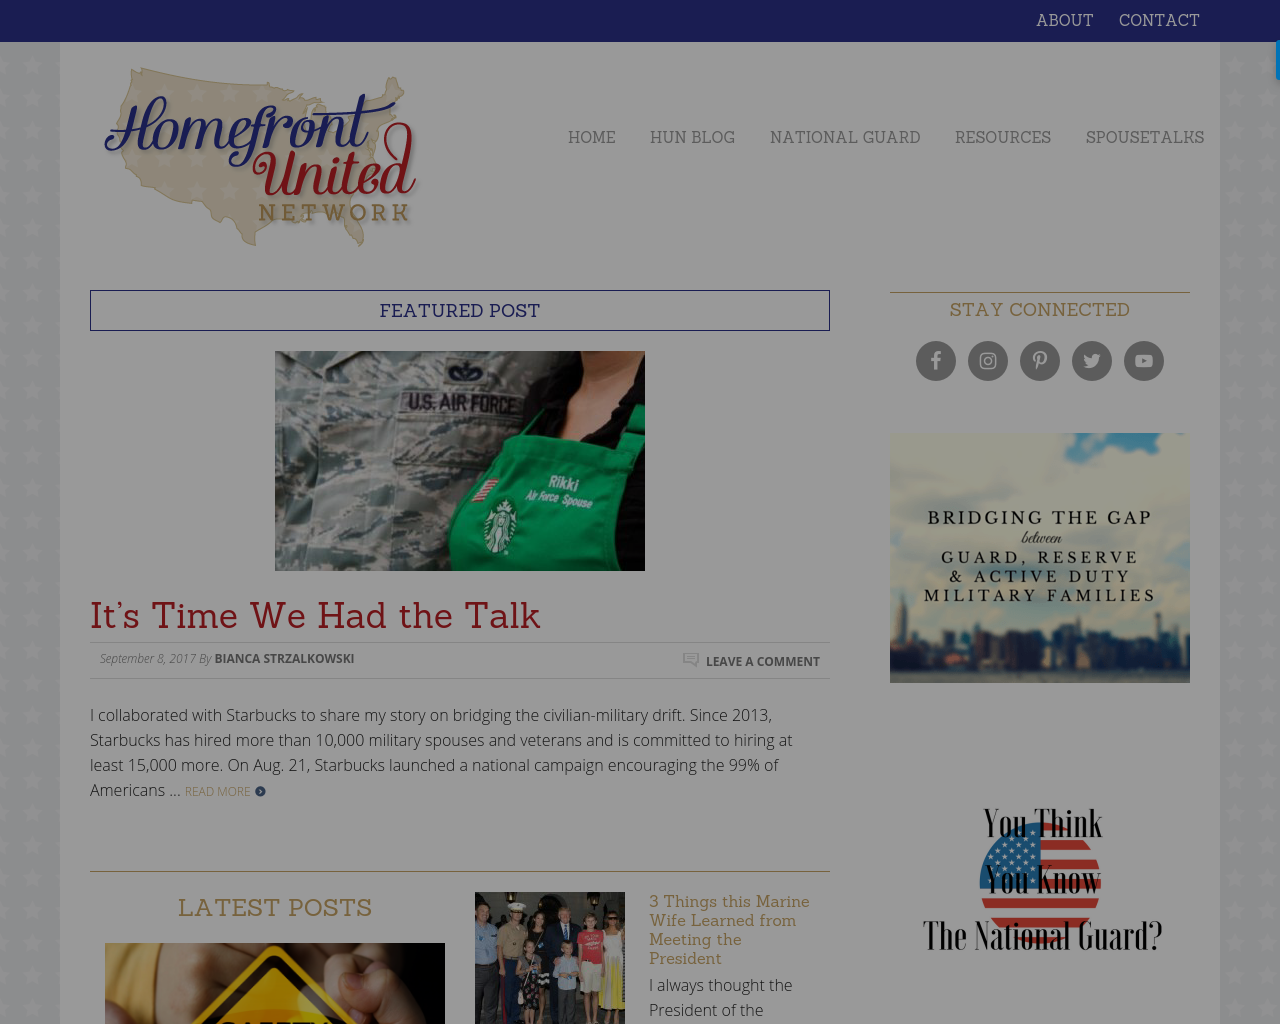 Homefront-United-Network-Advertising-Reviews-Pricing